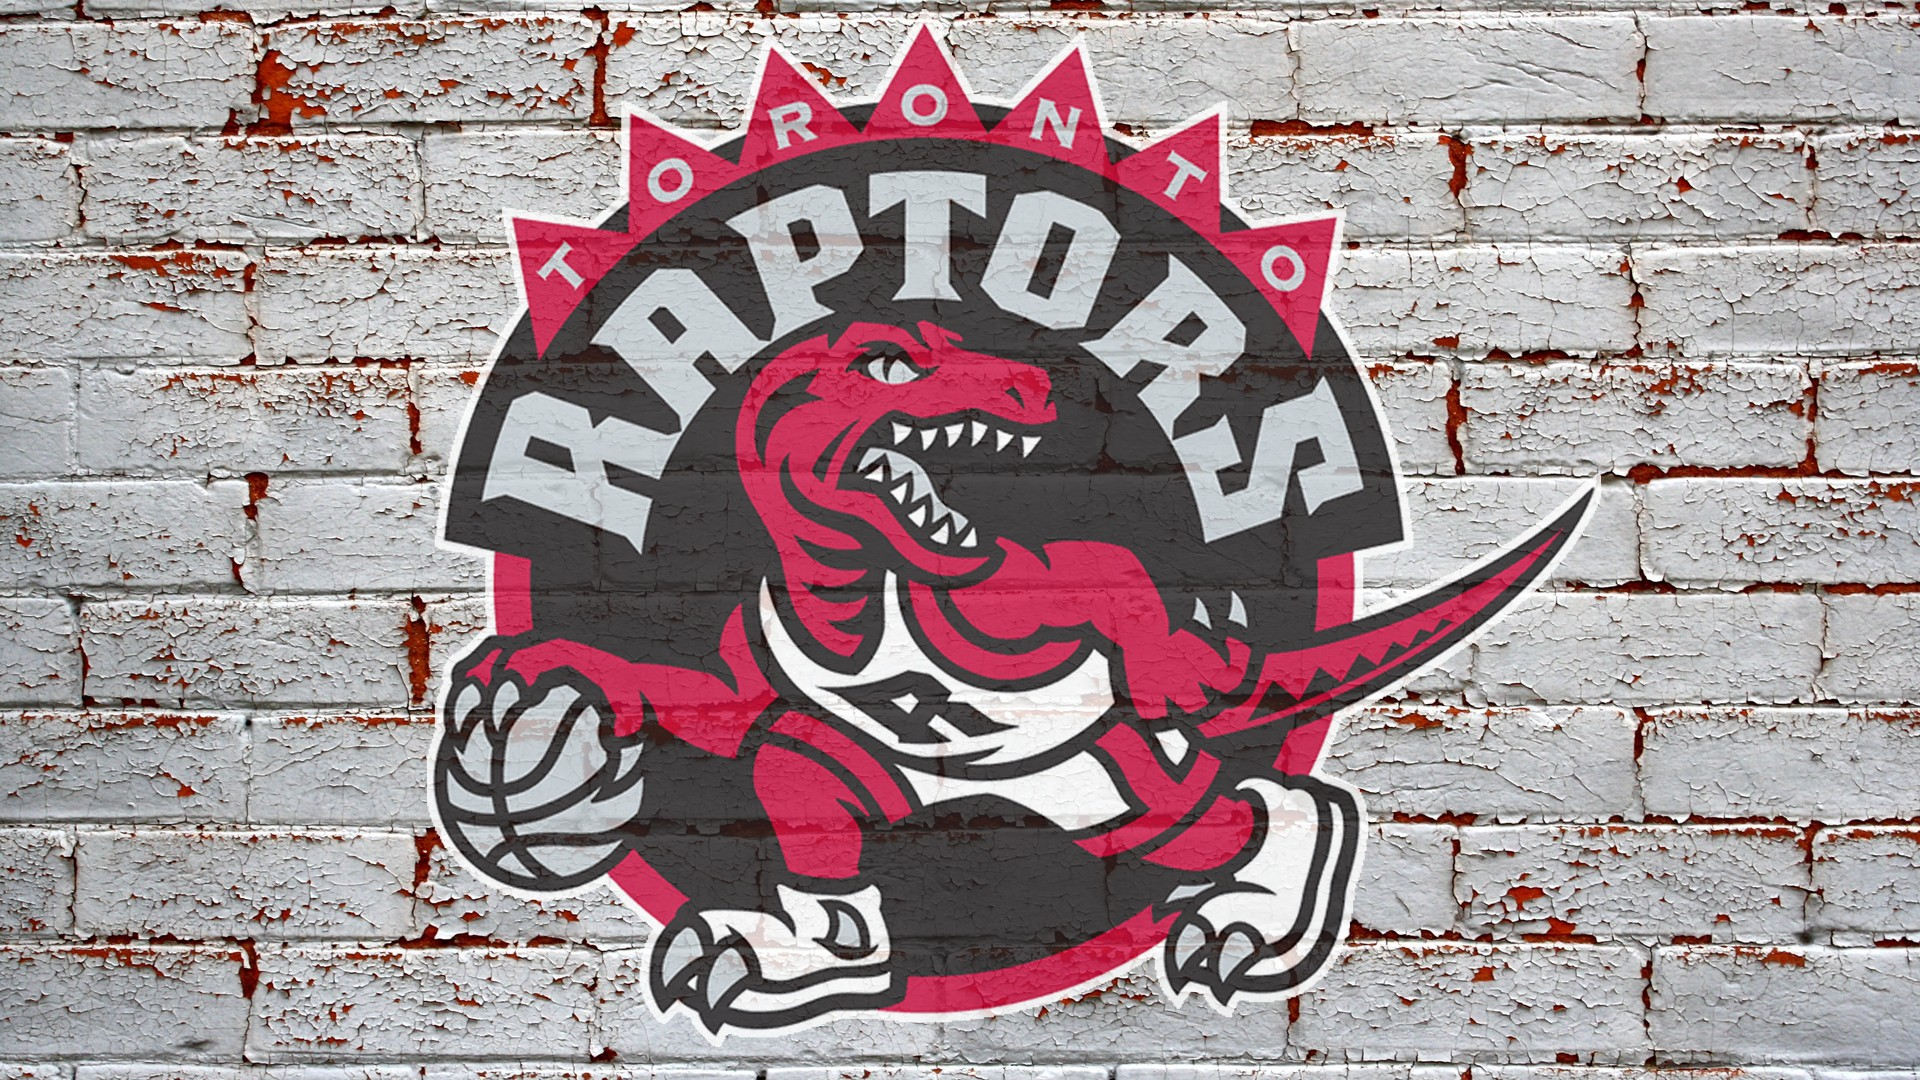 Toronto Raptors Logo wallpaper   897431 1920x1080